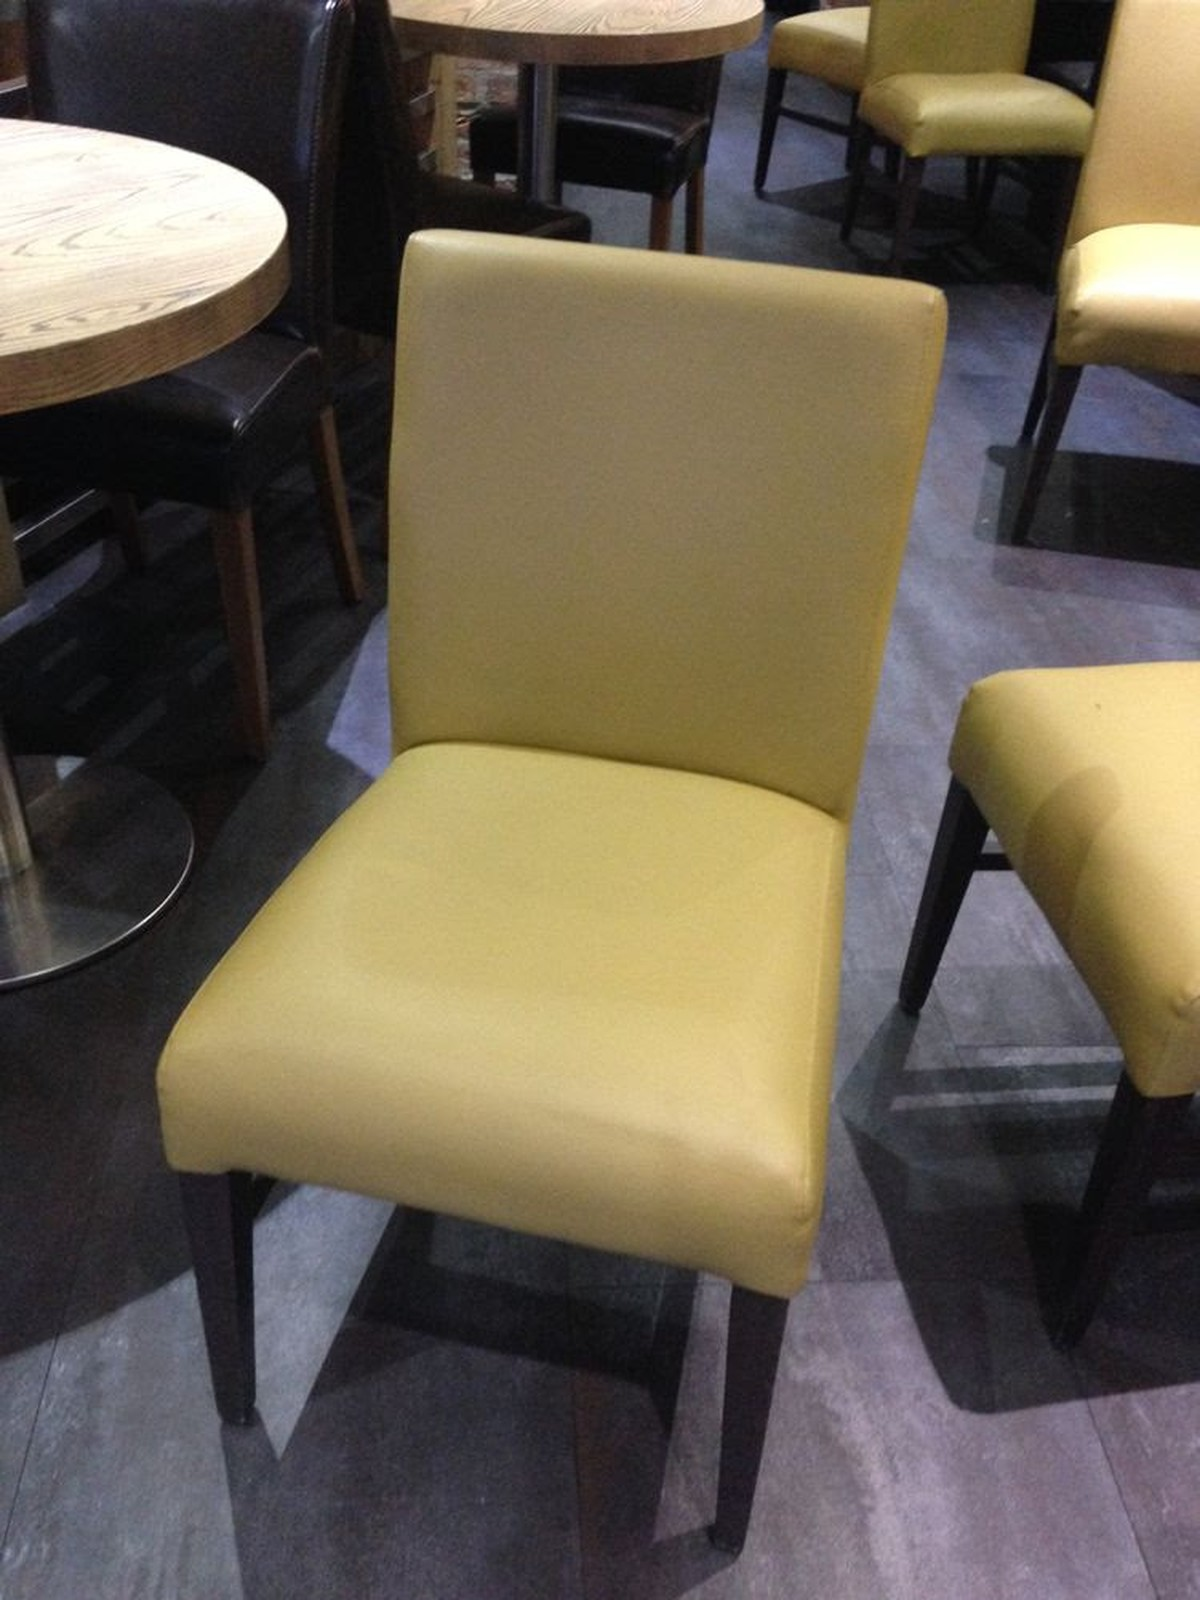 Secondhand Hotel Furniture Dining Chairs 29 Leather